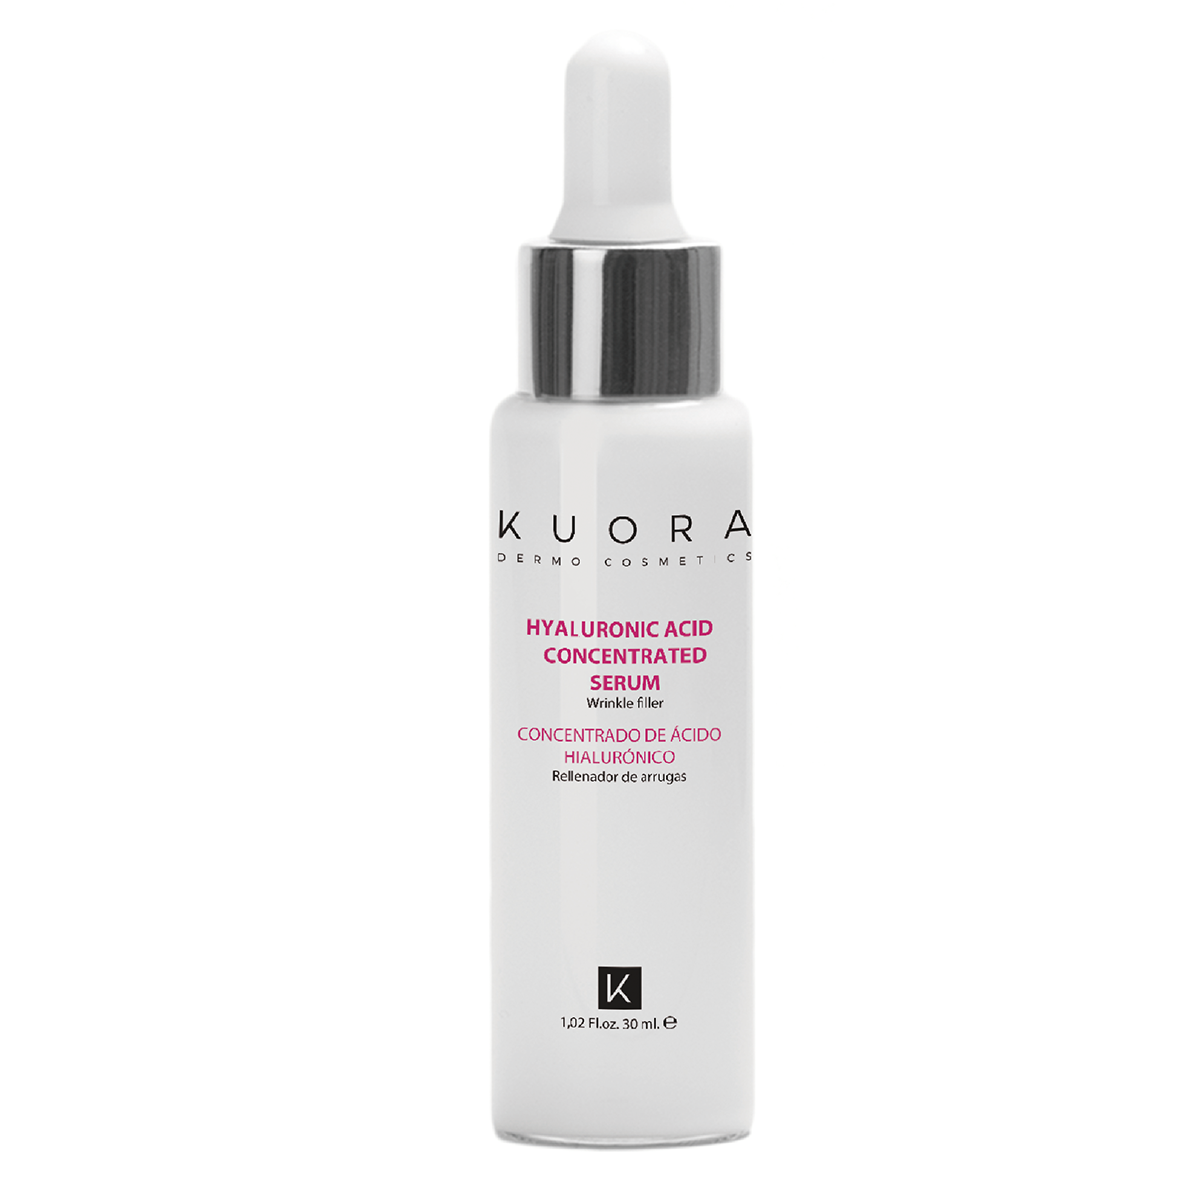 Hyaluronic Acid Concentrated Serum KUORA